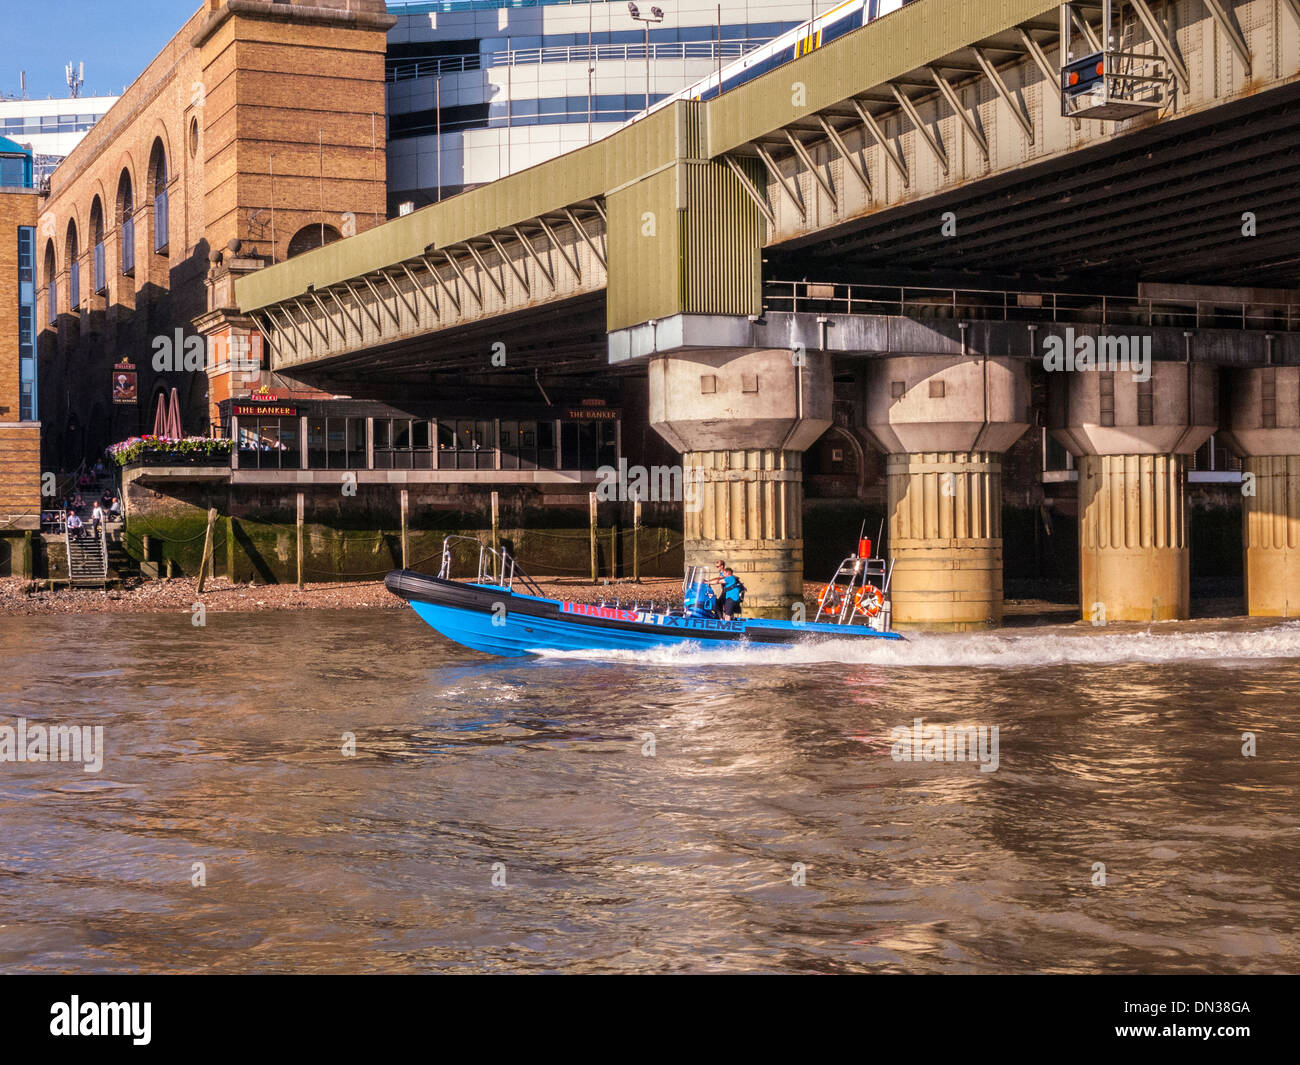 High speed boat on River Thames, London - Stock Image